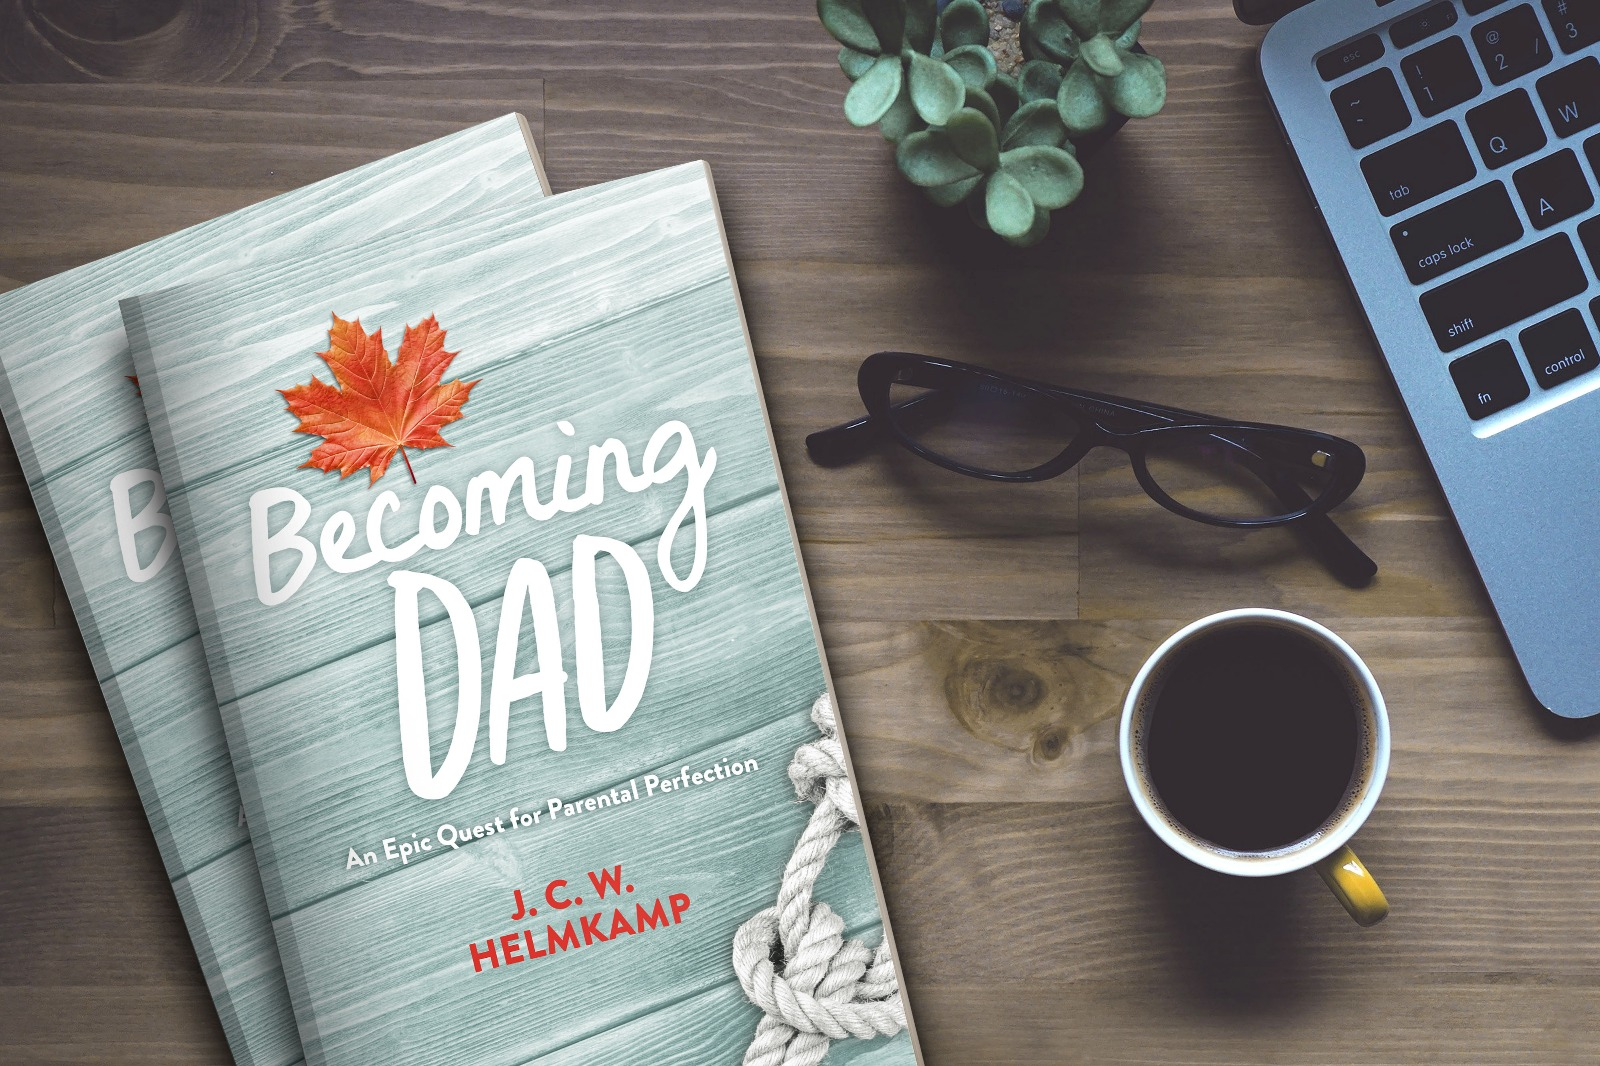 Cover Reveal: 'Becoming Dad' by J.C.W. Helmkamp 2